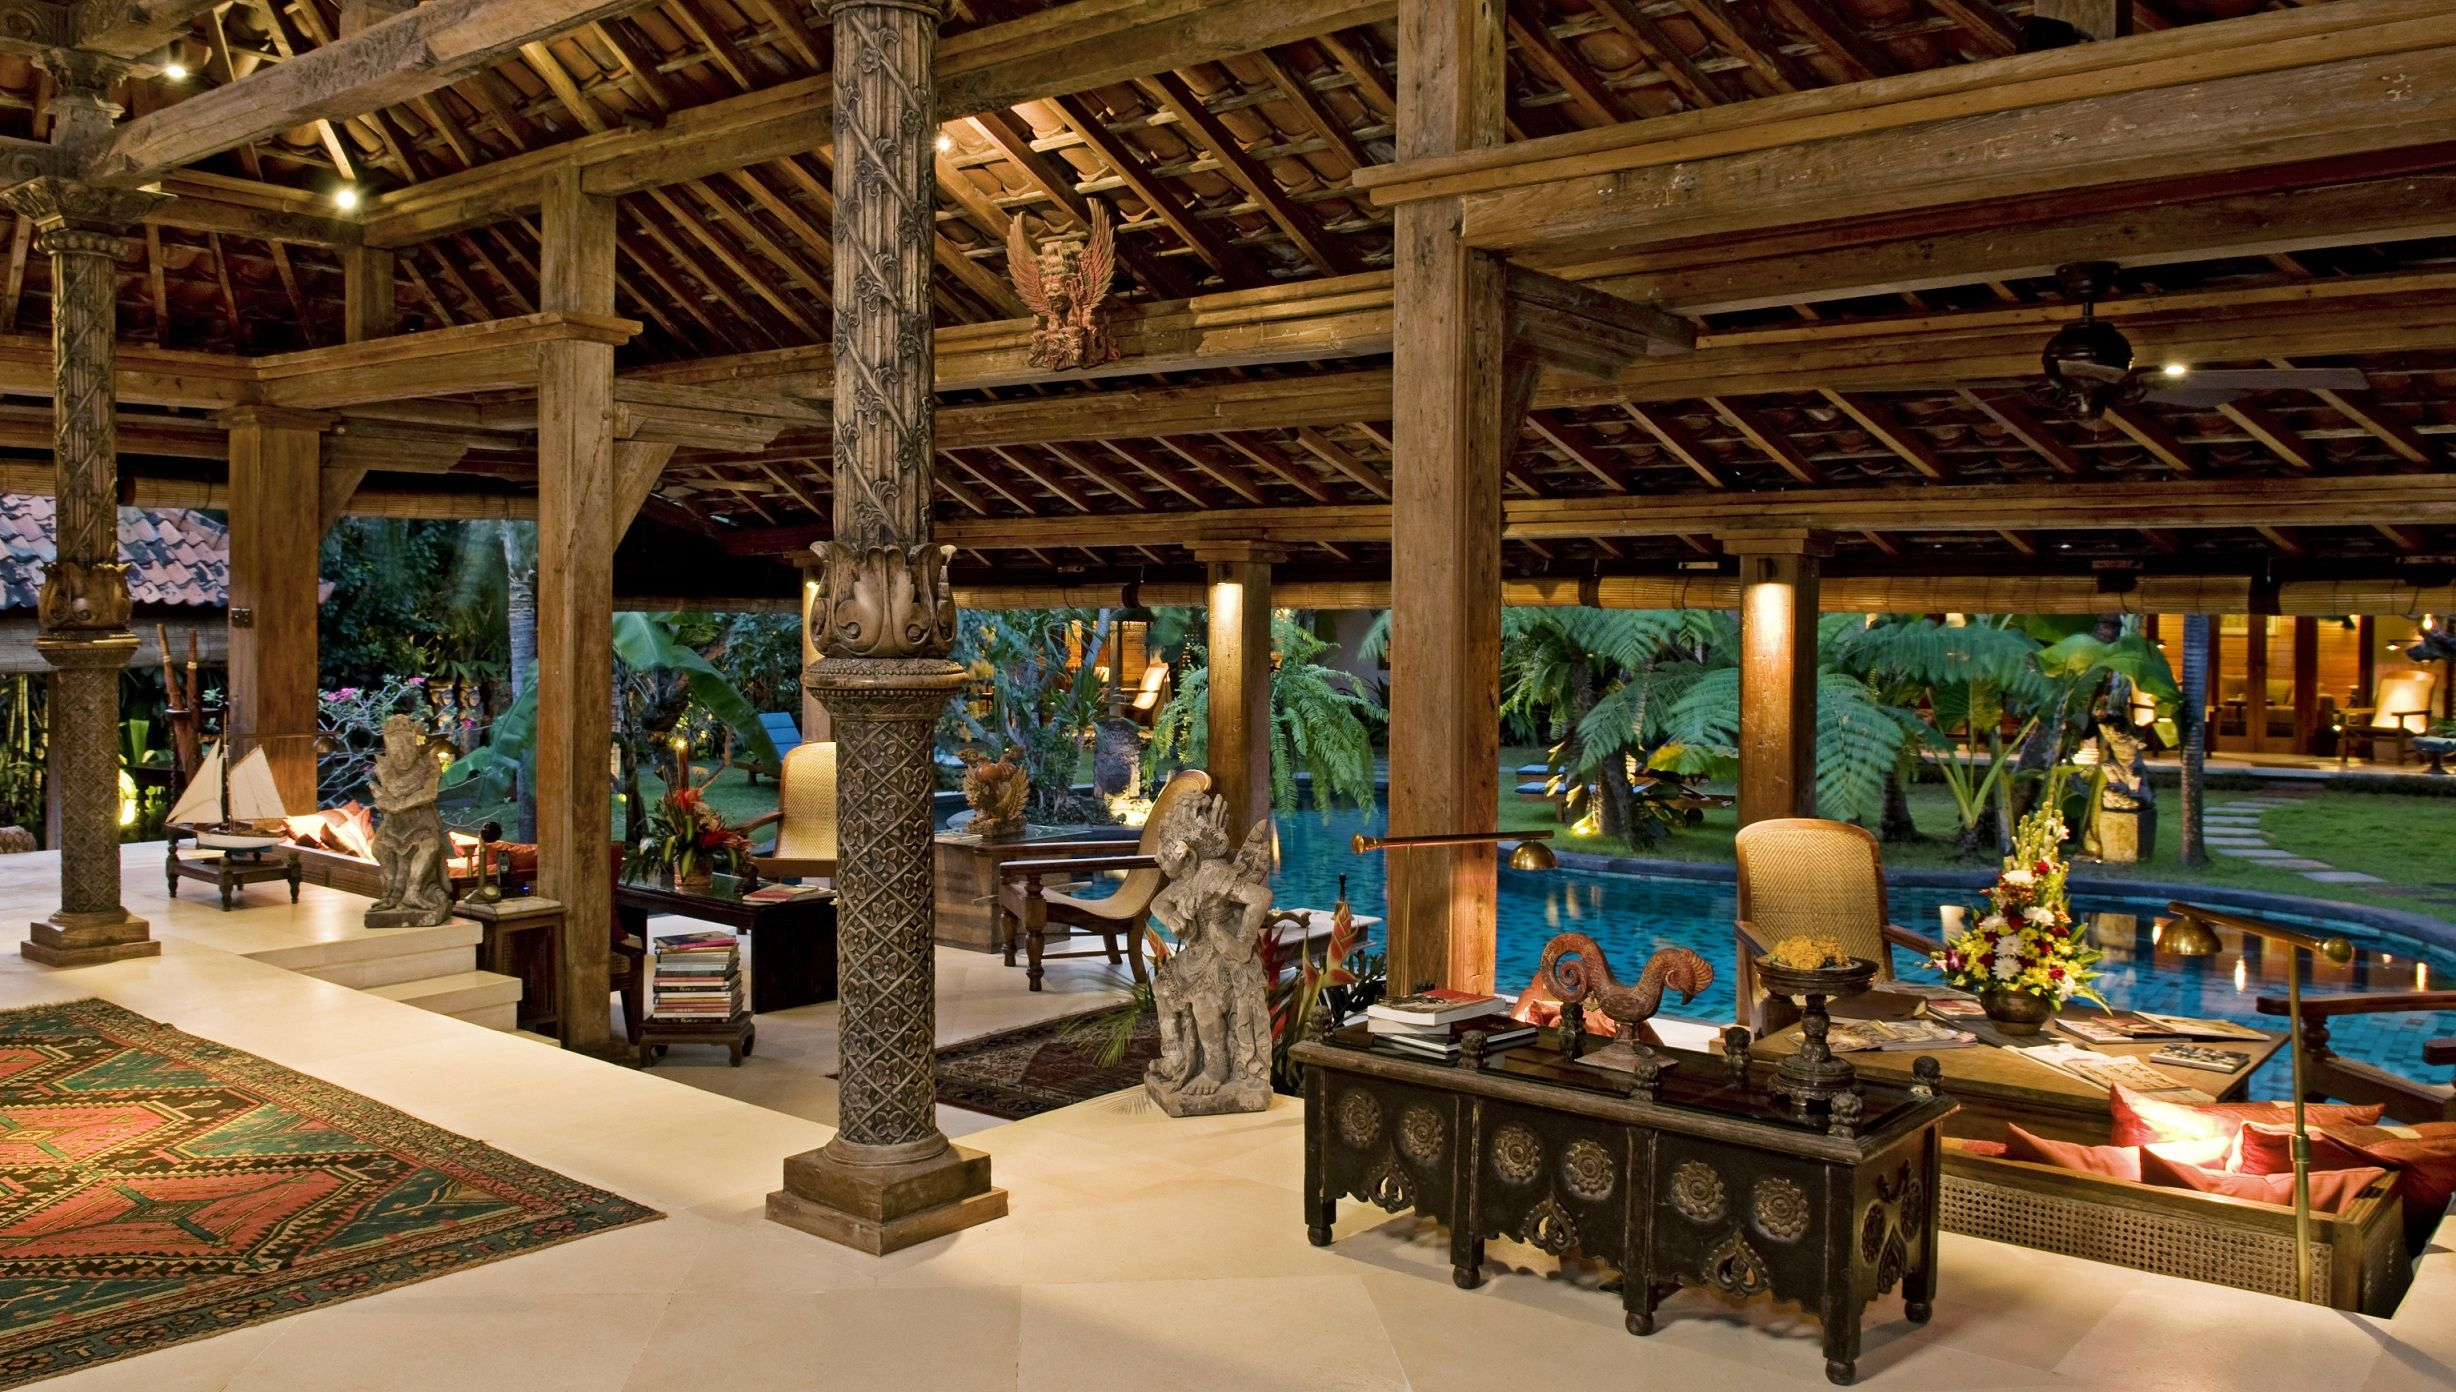 The Best Balinese House Designs Cool Ideas 6473 Bali Style Home Courtyard House Plans House Design